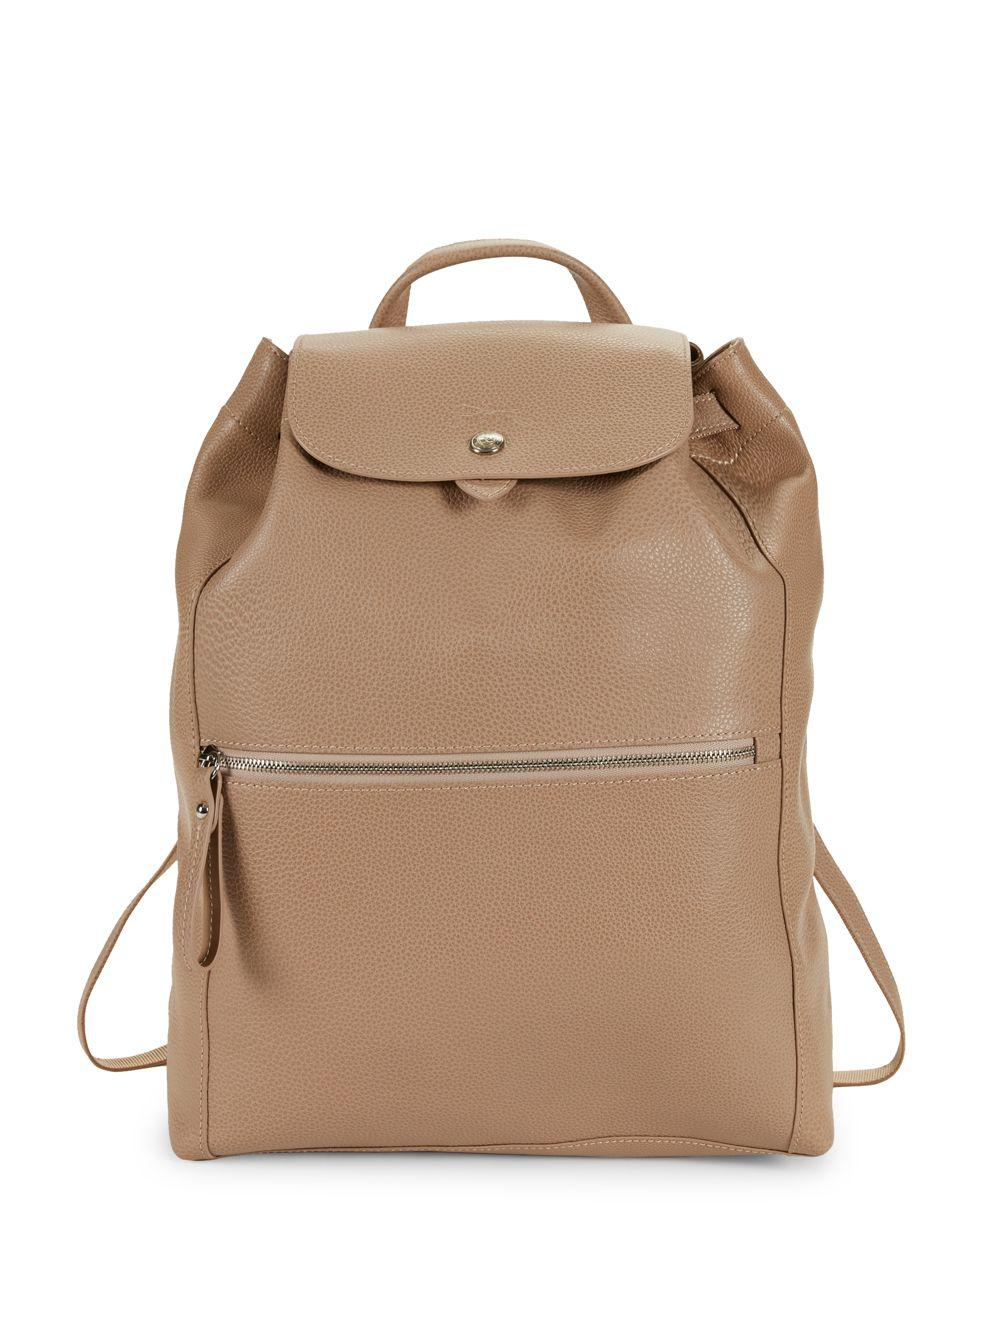 Le Foulonne Leather Backpack